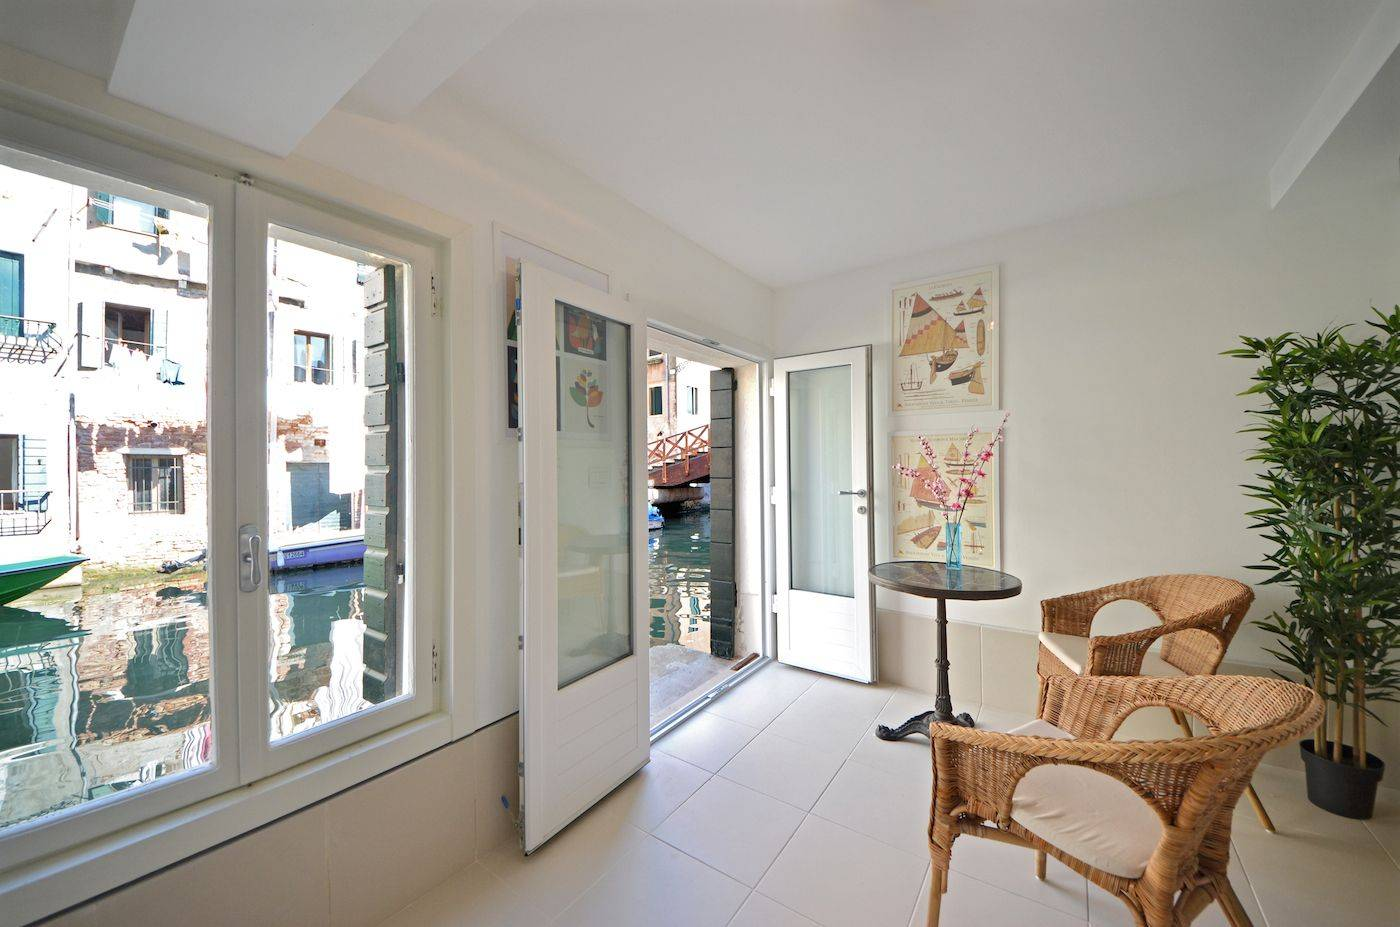 the master bedroom has a water door from where you can access the little terrace on the canal